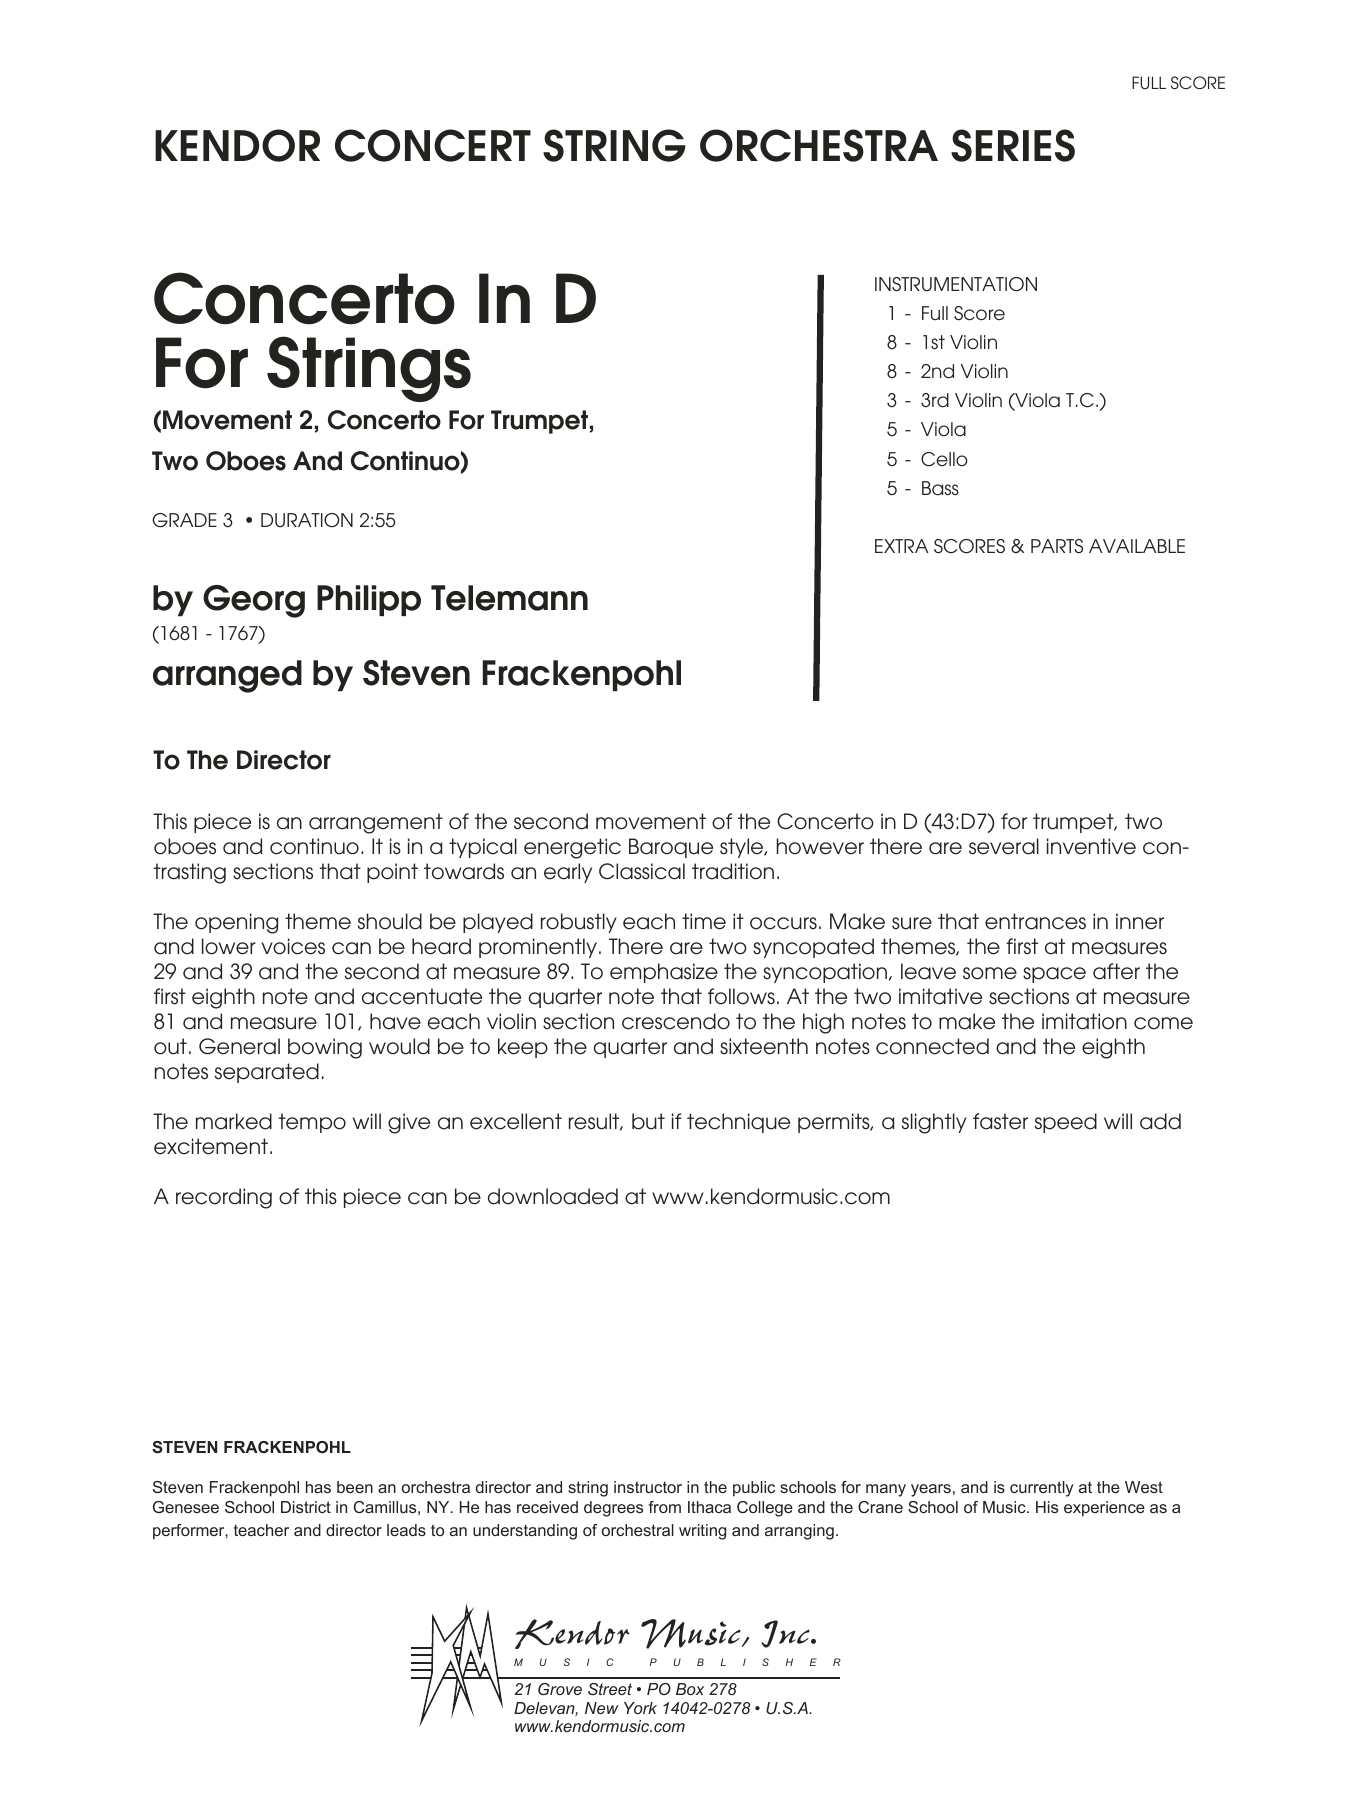 Concerto In D For Strings (Mov II Concerto For Trumpet, 2 Oboes and Continuo) (COMPLETE) sheet music for orchestra by Georg Philipp Telemann and Steve Frackenpohl. Score Image Preview.